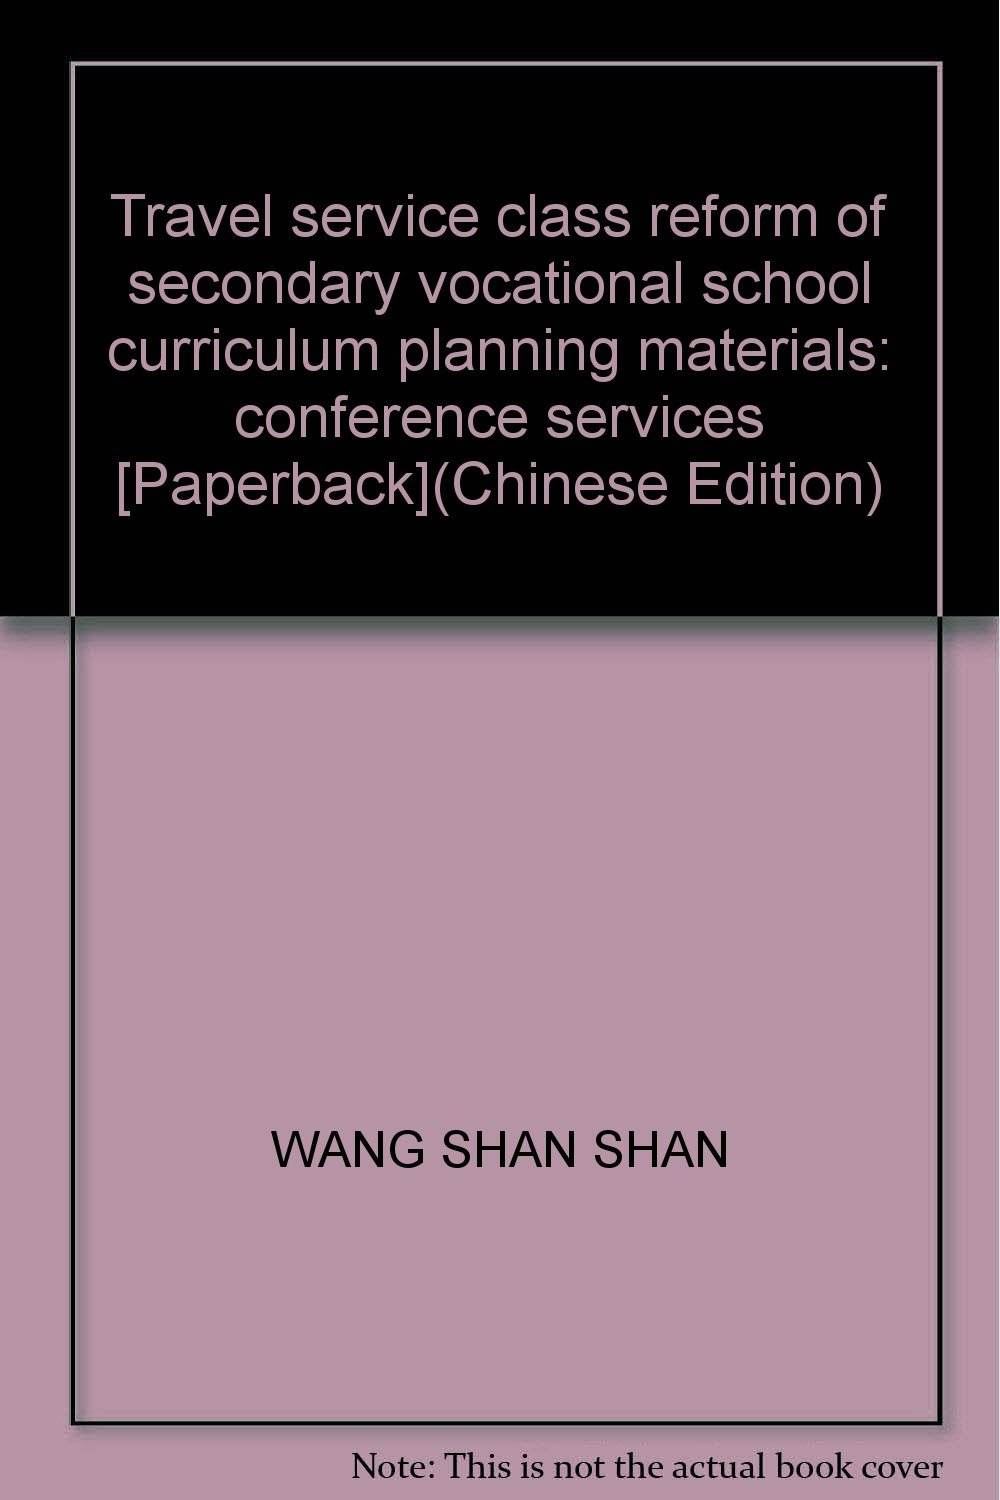 Download Travel service class reform of secondary vocational school curriculum planning materials: conference services [Paperback](Chinese Edition) pdf epub